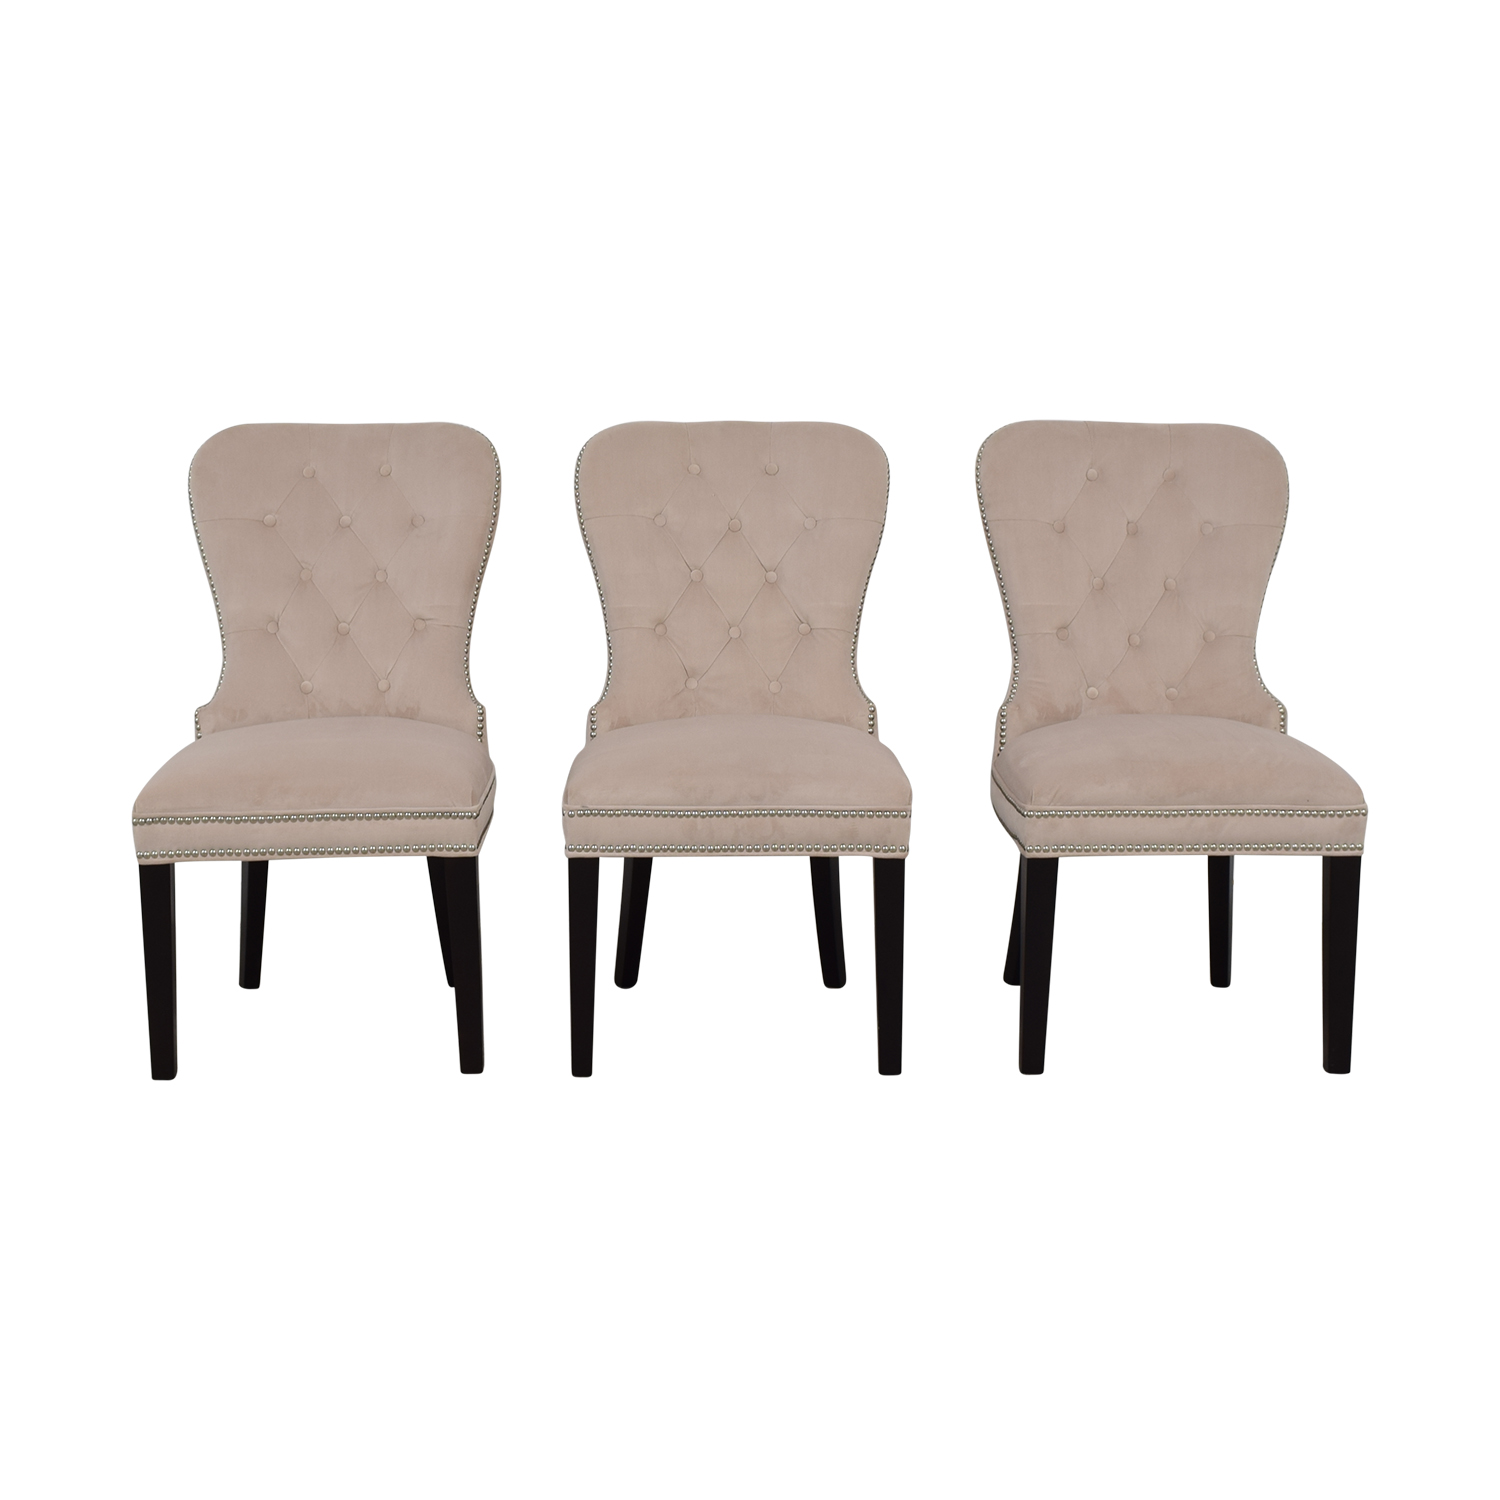 Z Gallerie Charlotte Cream Tufted Nailhead Dining Chairs / Chairs